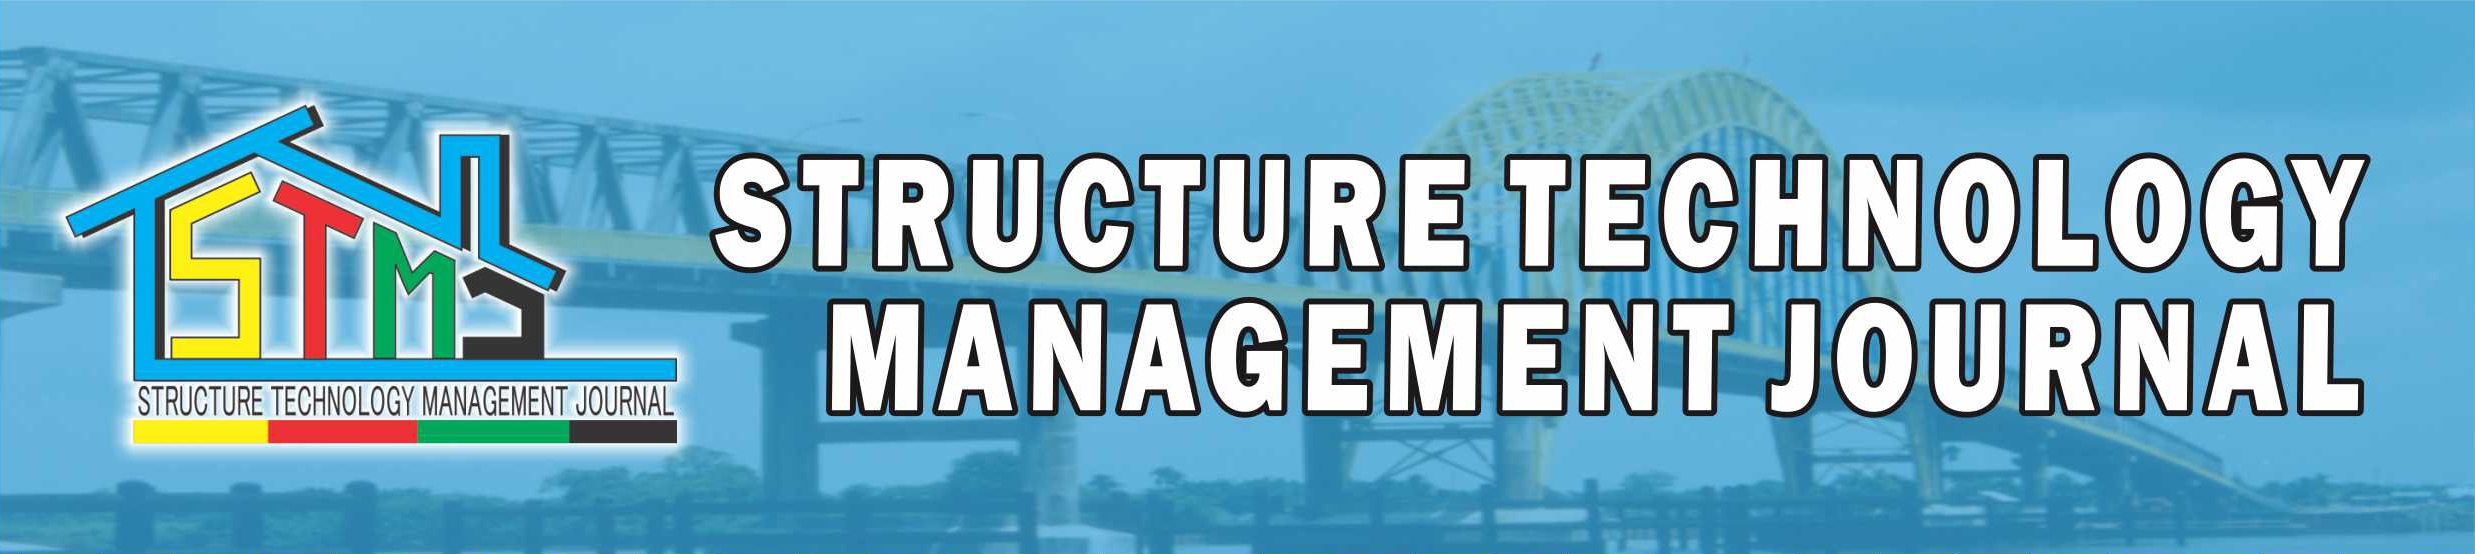 Structure Technology Management Journal